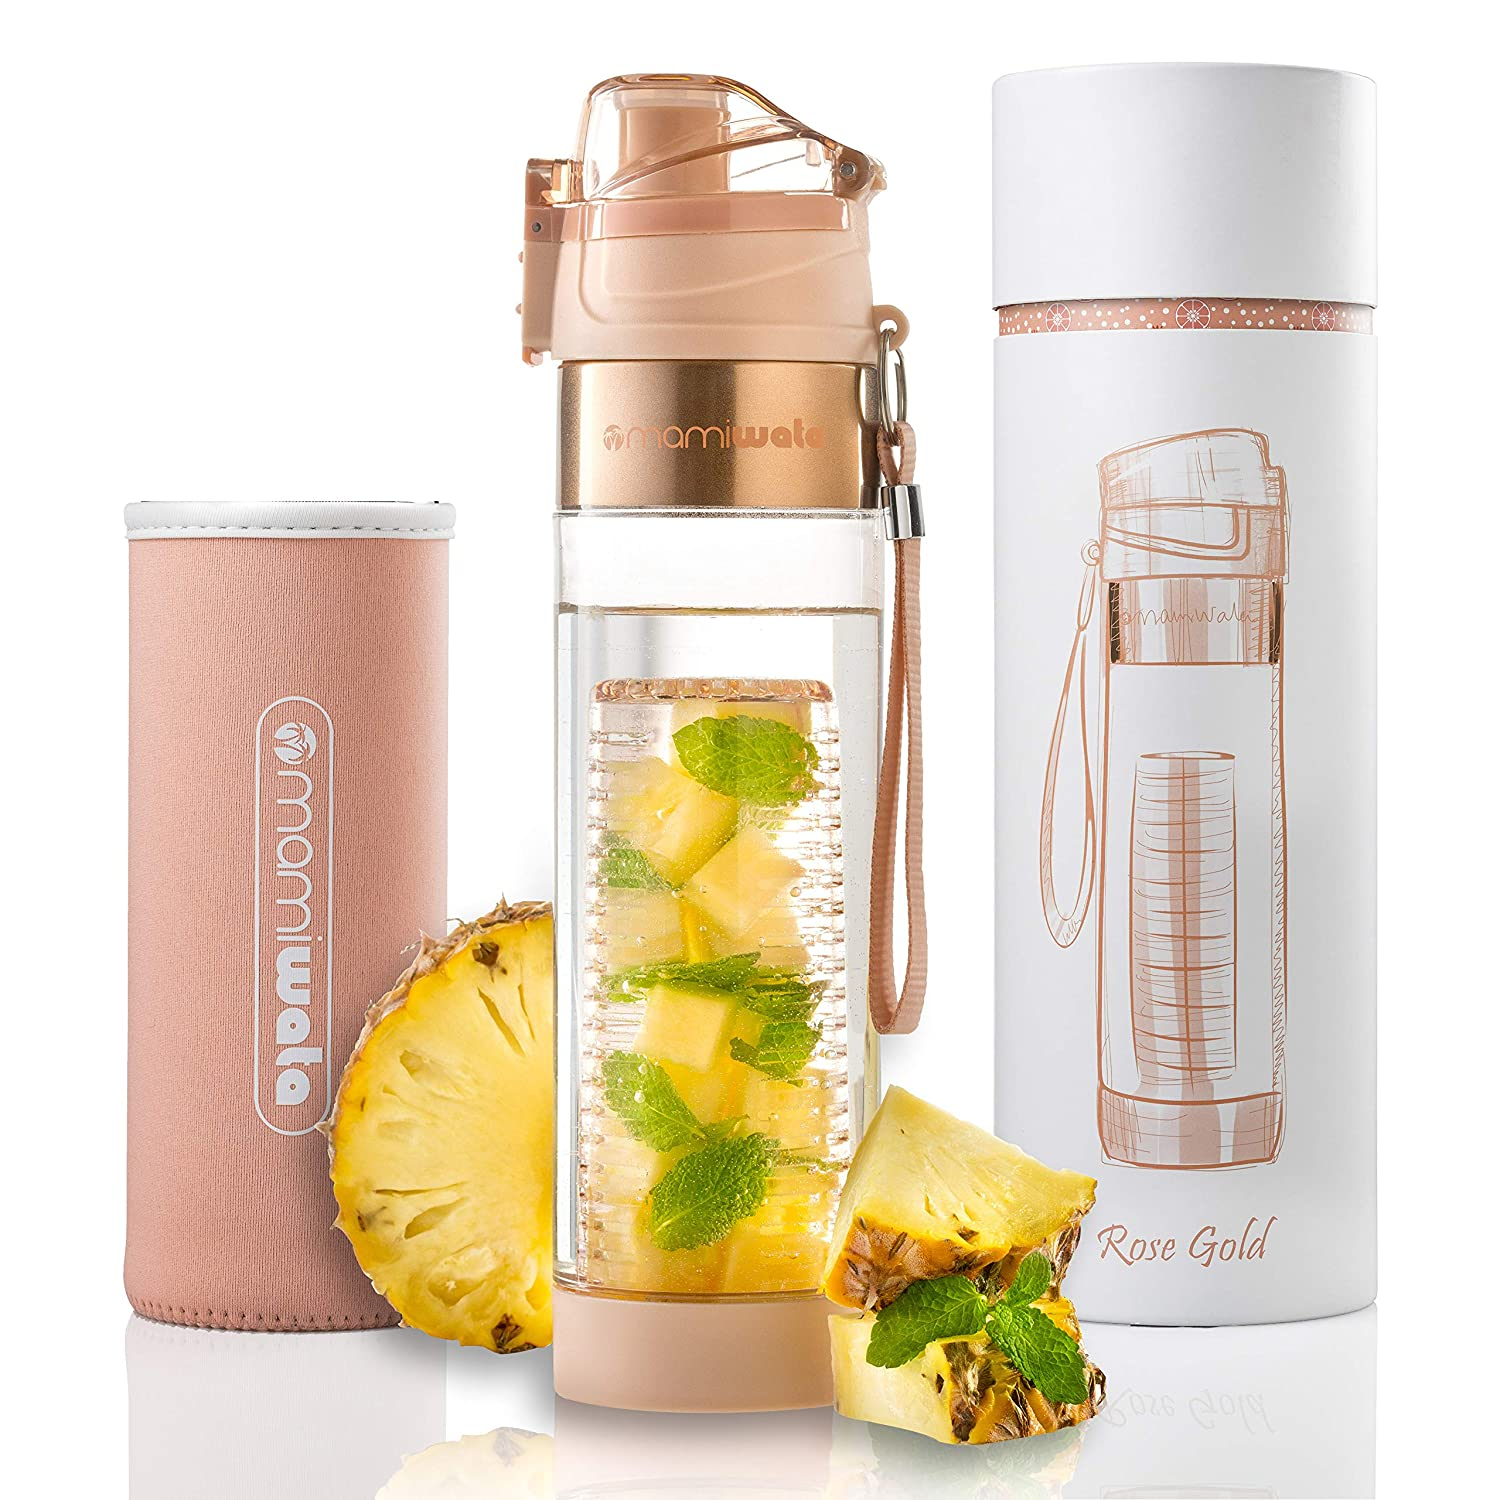 dc382ce1e7 MAMI WATA Fruit Infuser Water Bottle - Beautiful Gift Box - Unique Stylish  Design - Free Fruit Infused Water Recipes eBook and Insulating Sleeve - 24oz